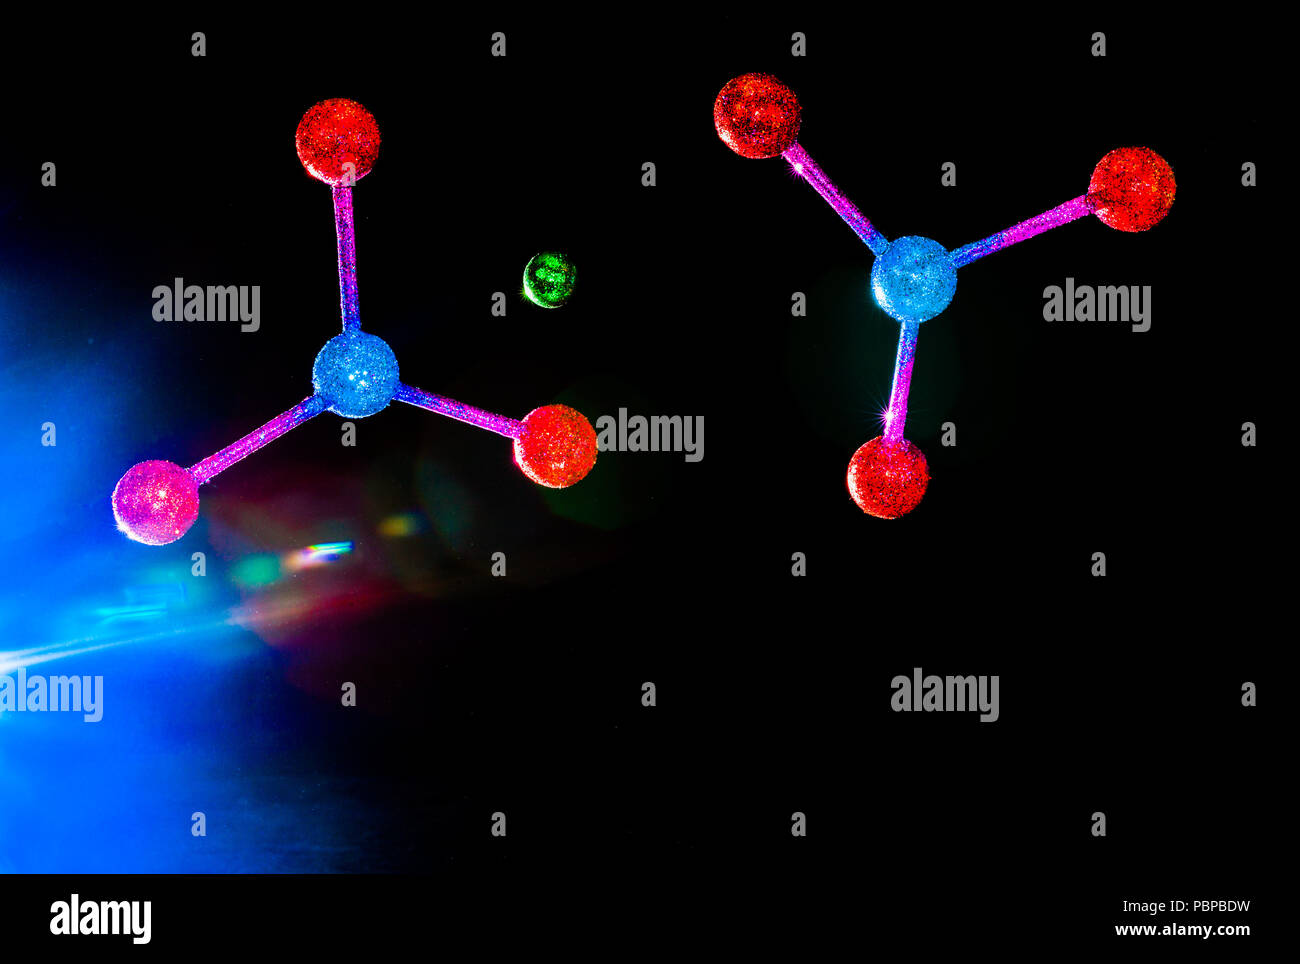 Lab experiments atom or molecule structure of barium nitrate with lab experiments atom or molecule structure of barium nitrate with chemical formula bano32 in black background with copy space ccuart Gallery